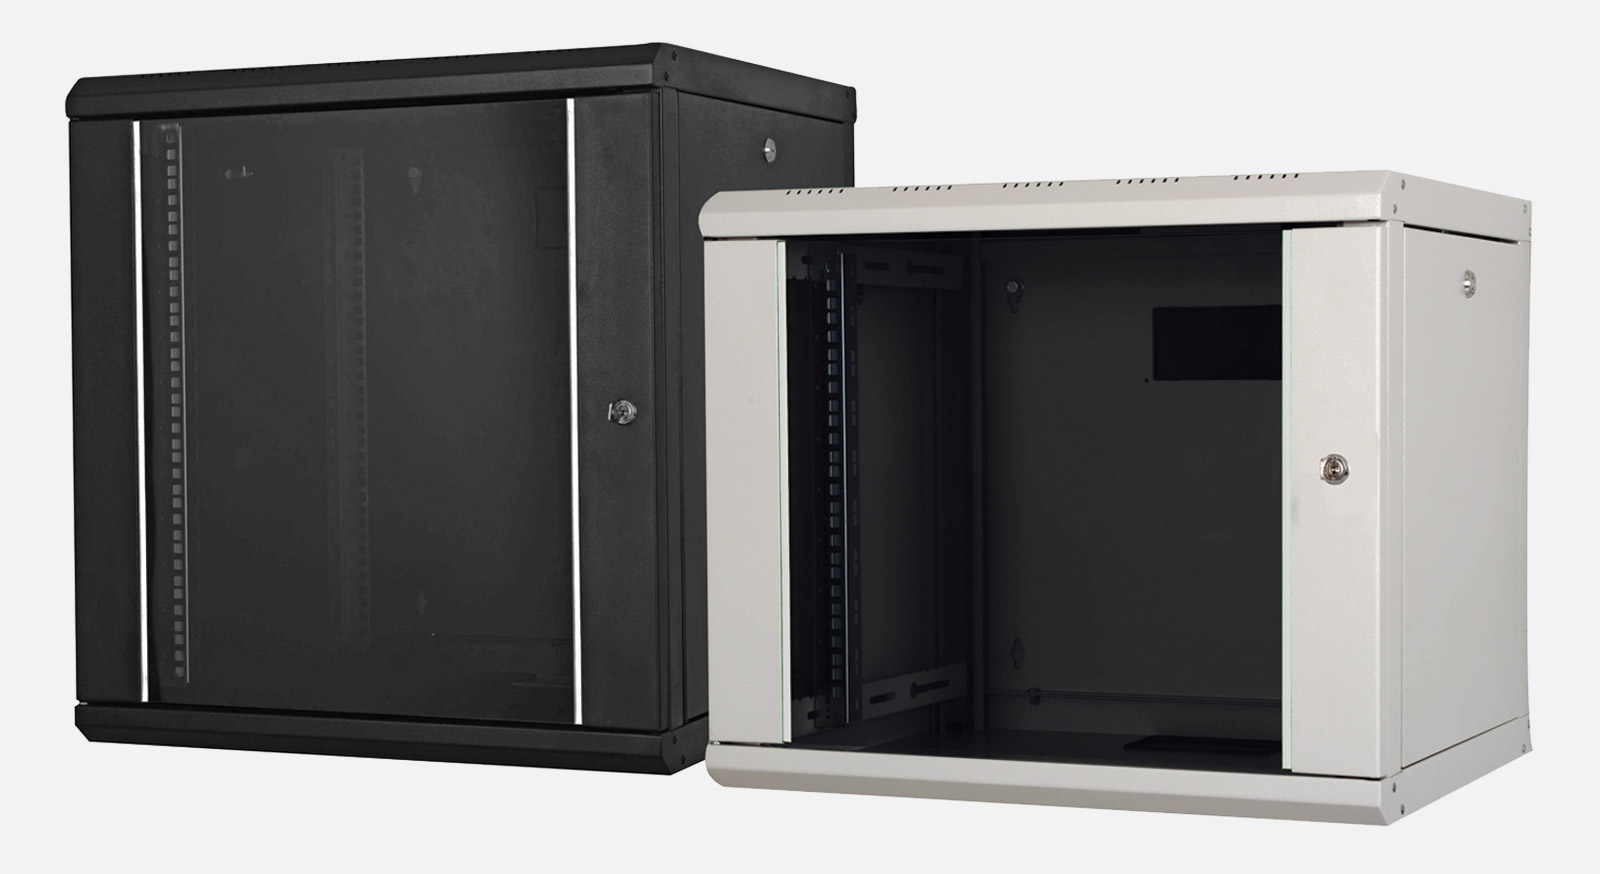 CANFORD RACKS - Proline Series - 19 Inch cabinets - Floor or